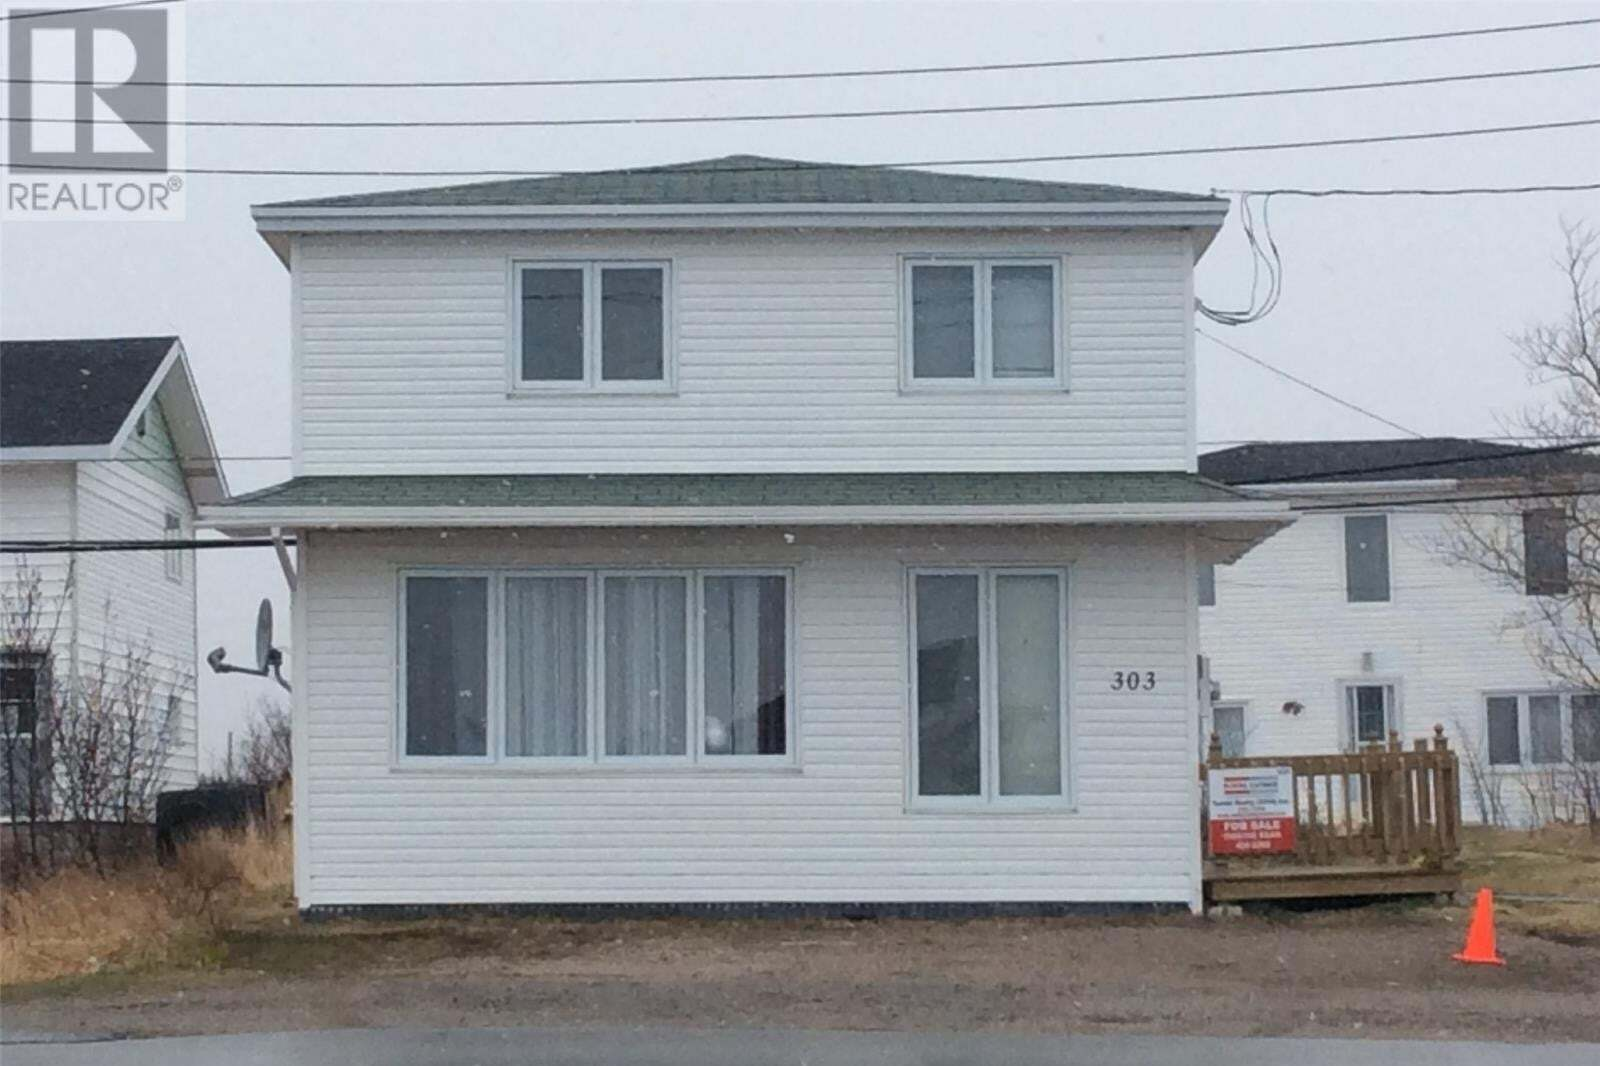 House for sale at 303 Main St Wesleyville Newfoundland - MLS: 1211263